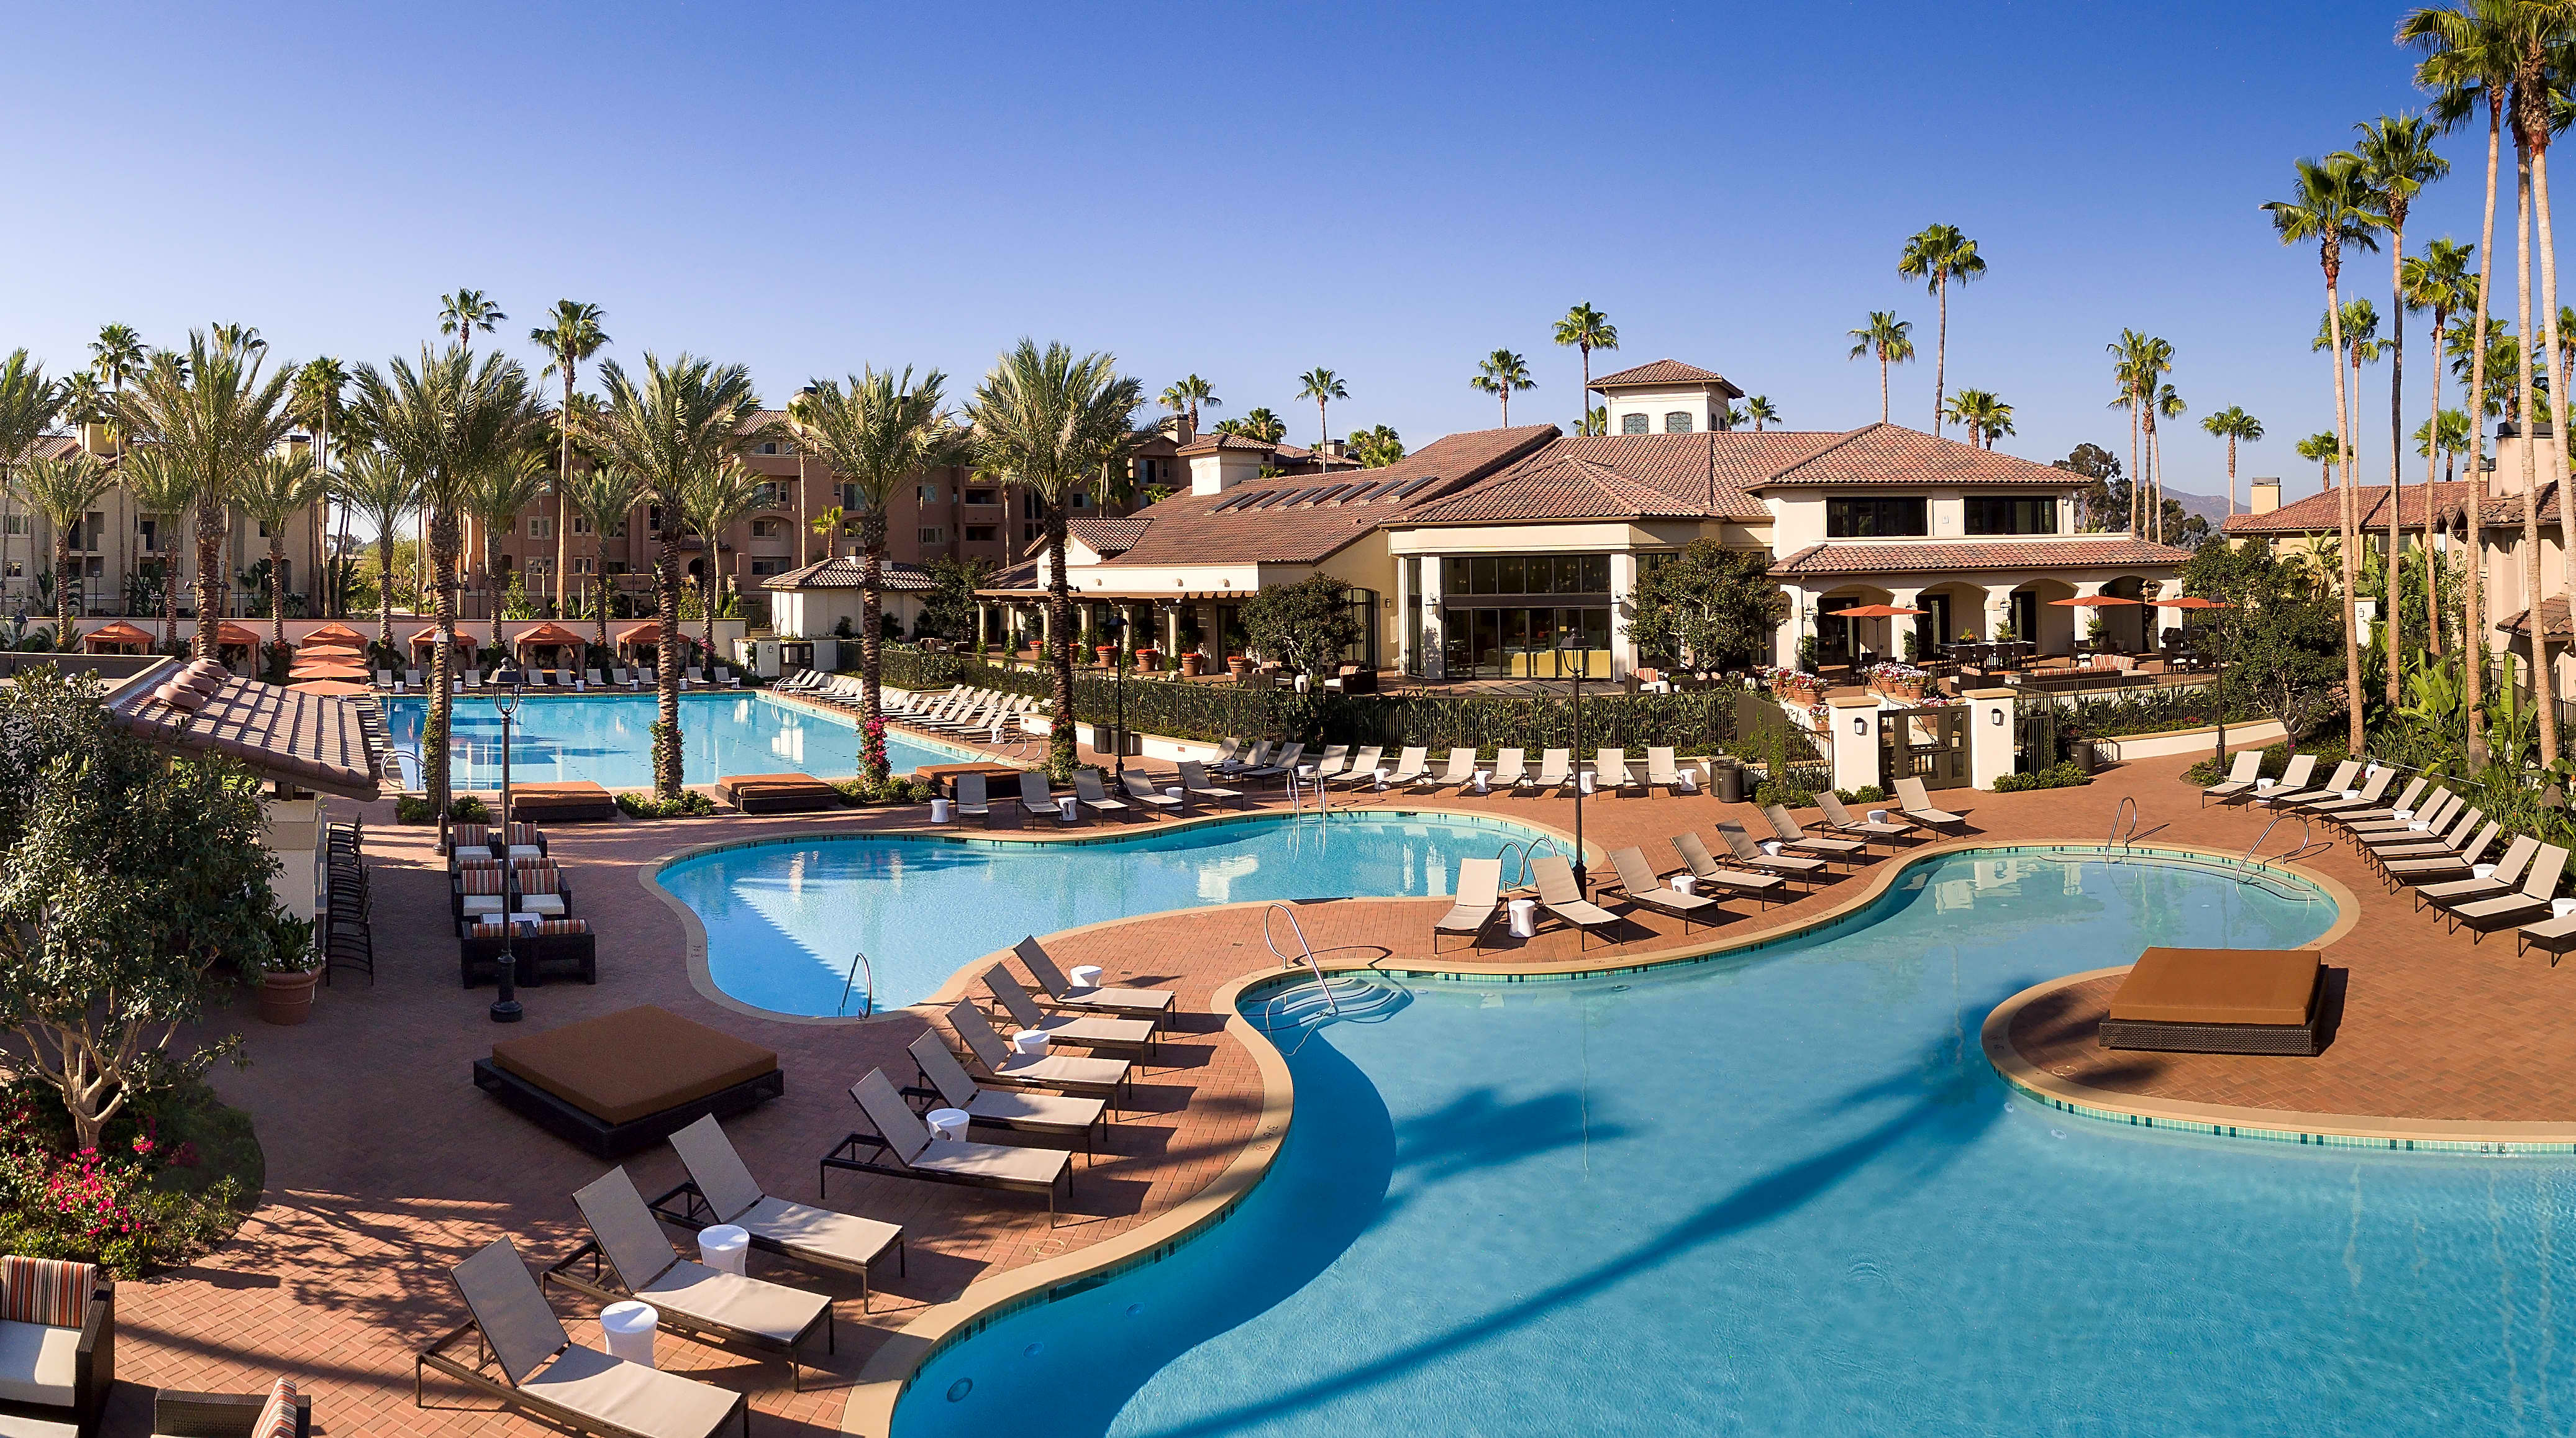 The Village Mission Valley Apartments - San Diego, CA 92124